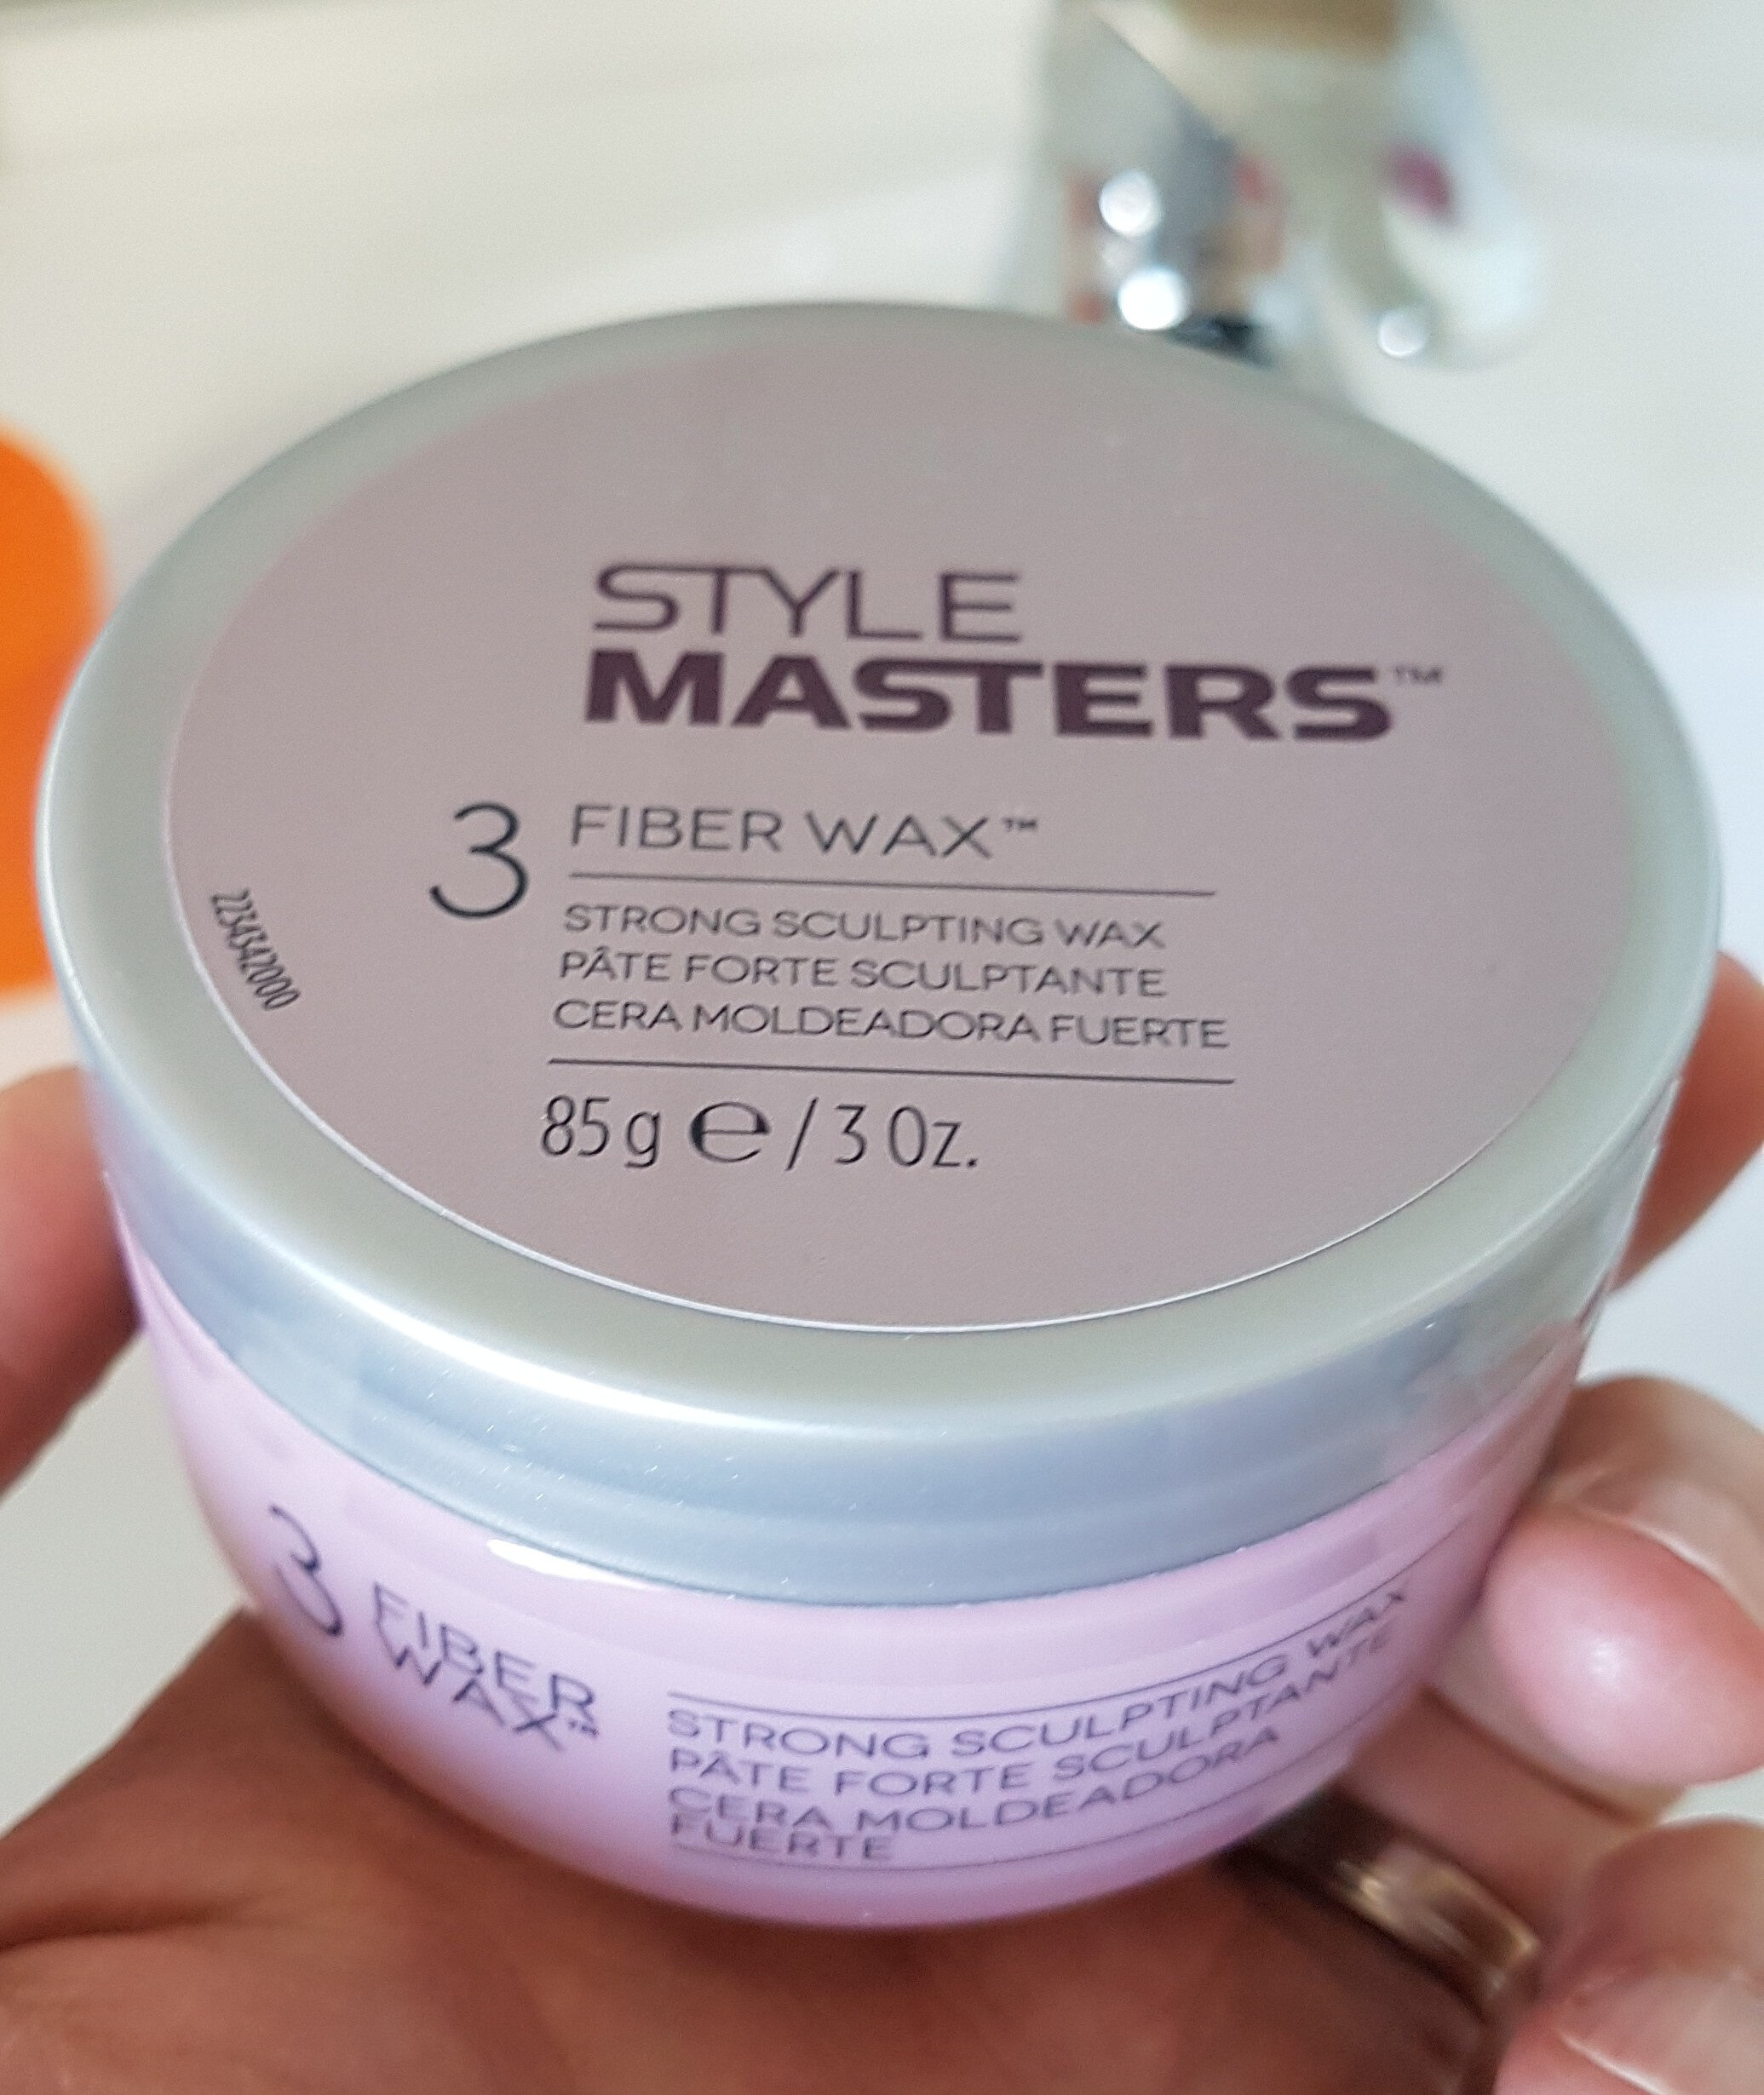 style masters fiber wax - Product